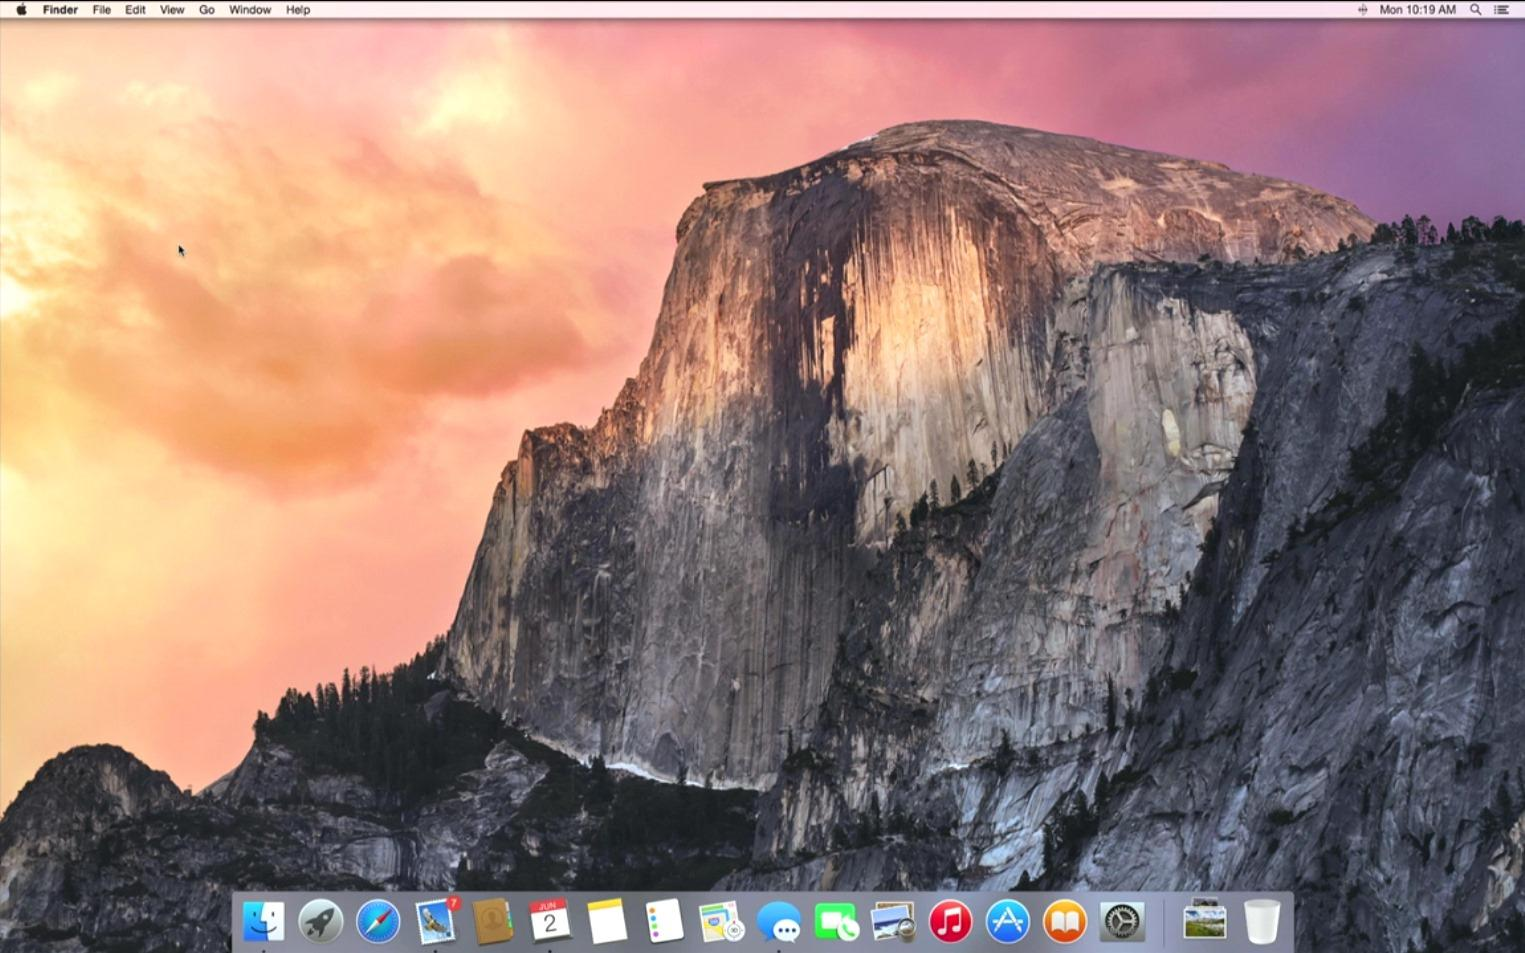 Installing Homebrew on Yosemite